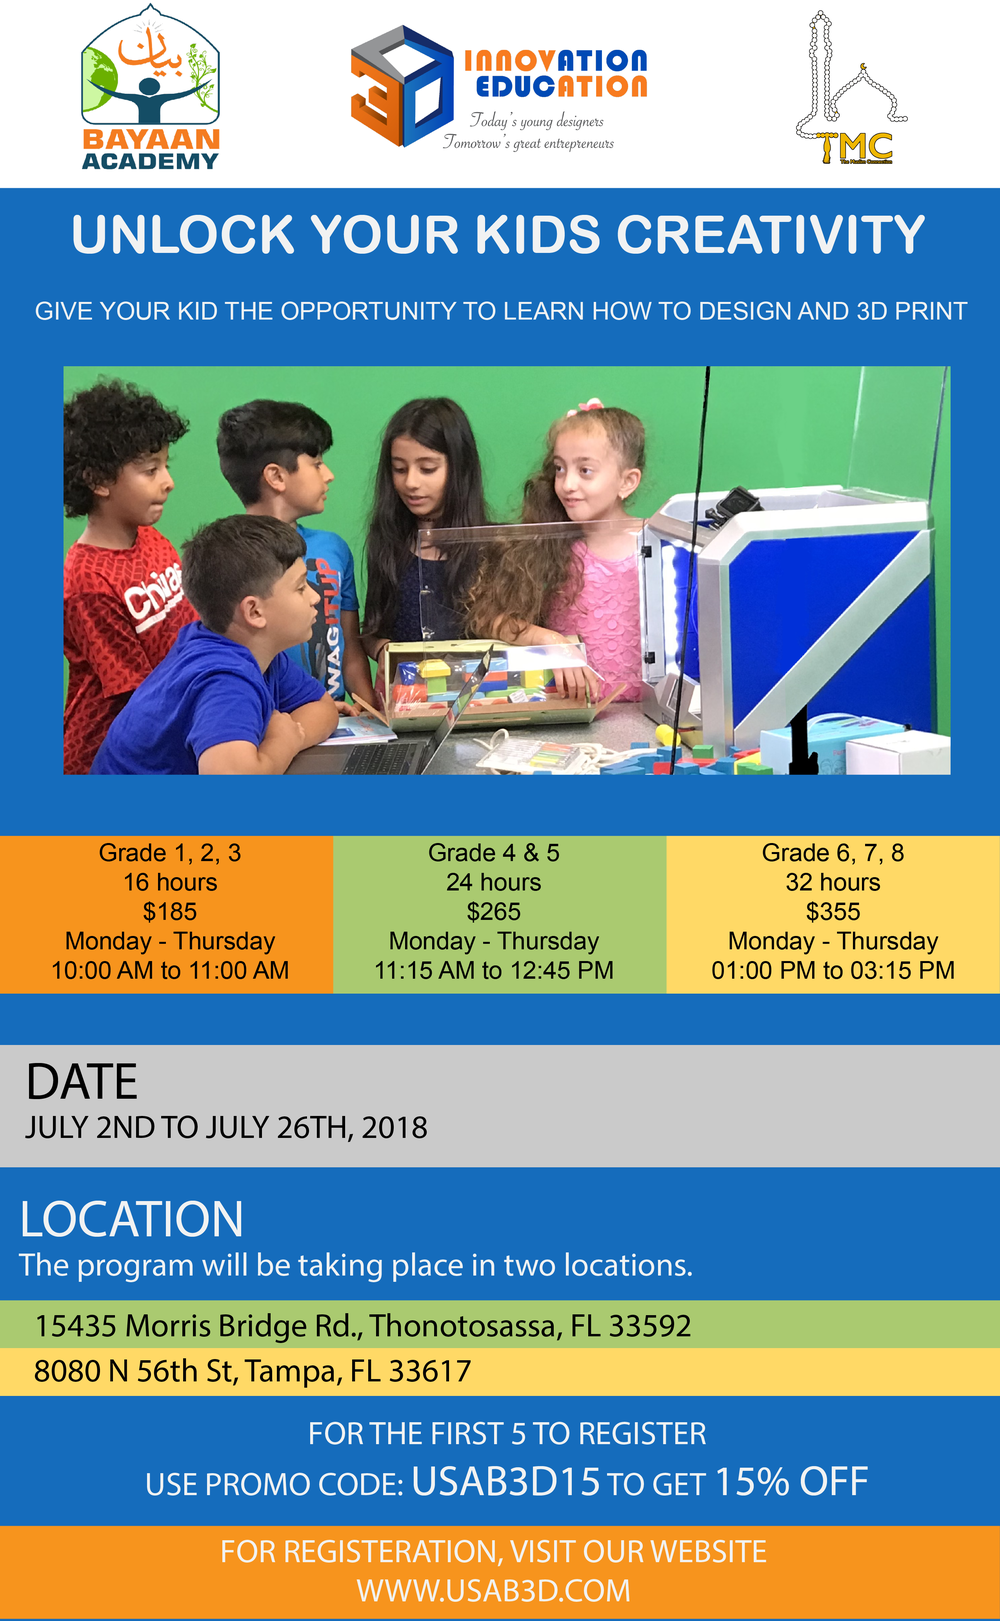 Let your kids explore their creativity while learning how to design 3D print! - For registration click HERE